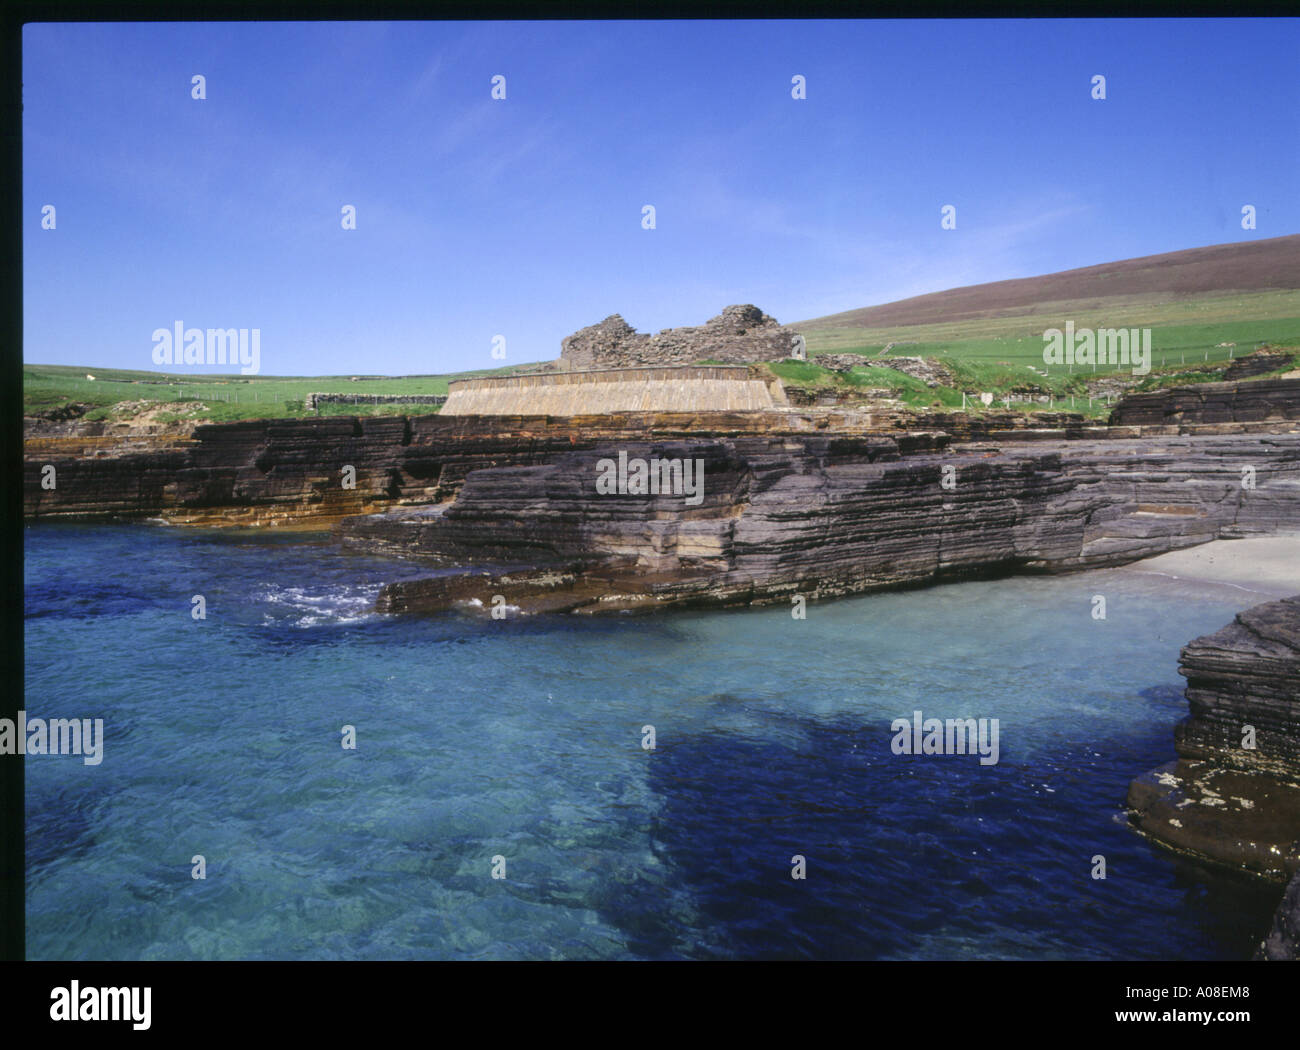 dh Midhowe Broch ROUSAY ORKNEY Iron ages fortified defensive dwelling stronghold - Stock Image